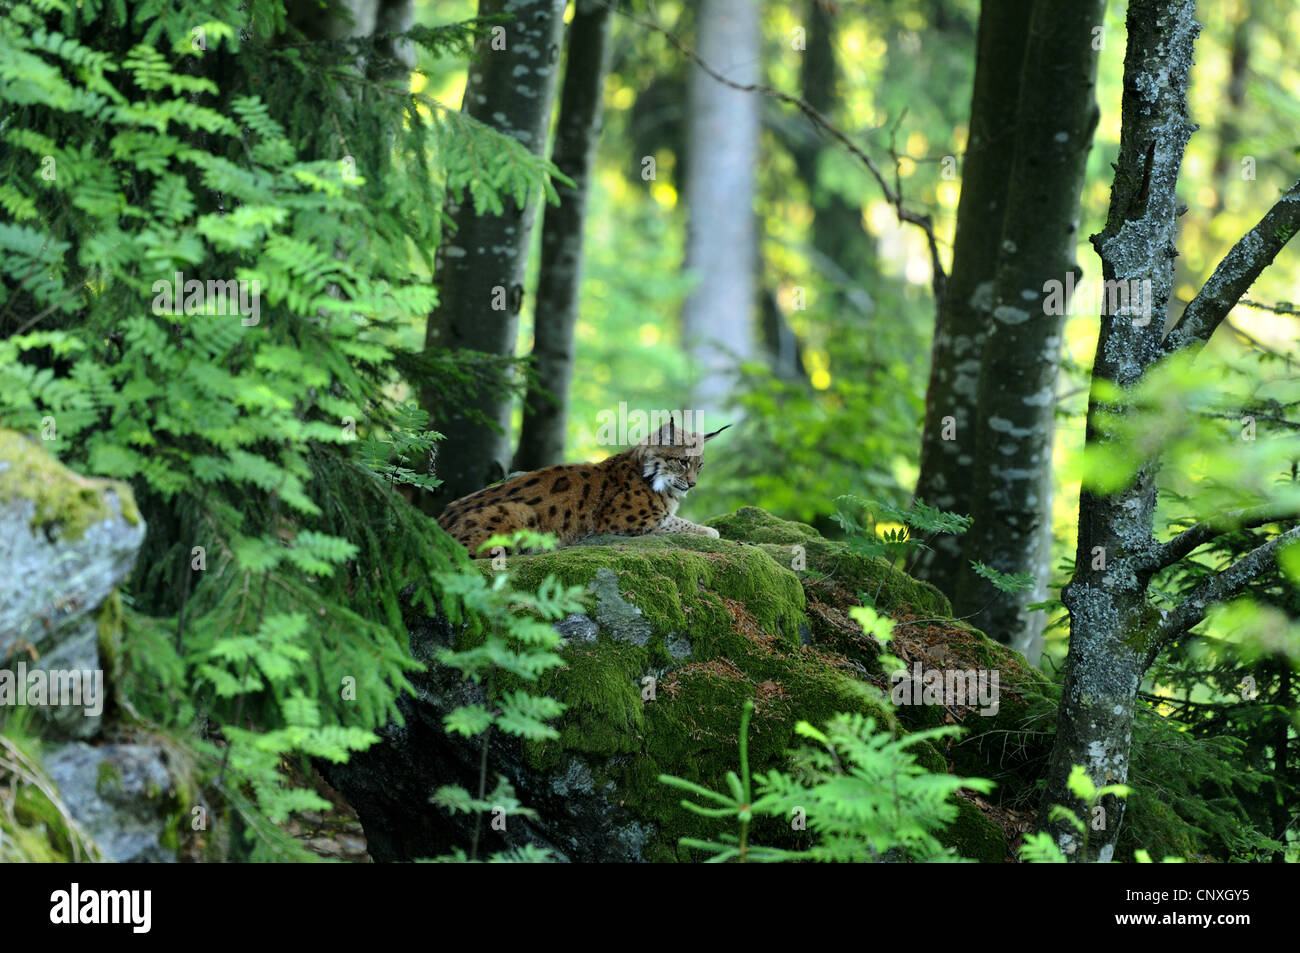 Eurasian lynx (Lynx lynx), sitting in a forest on mossy rock, Germany, Bavaria, Bavarian Forest National Park Stock Photo